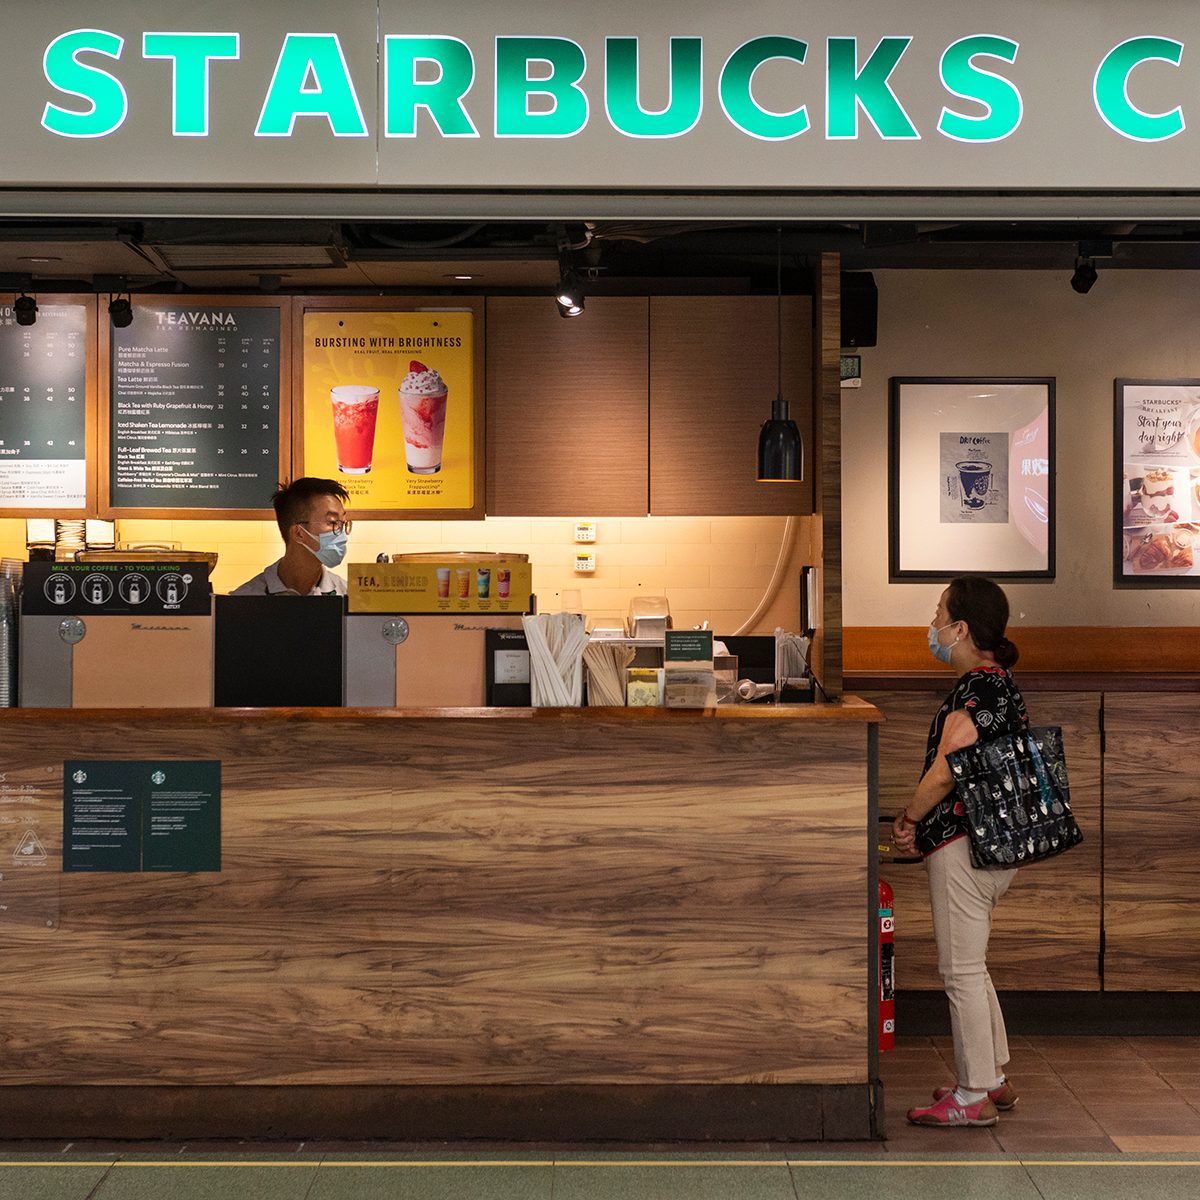 HONG KONG, CHINA - 2020/07/07: American multinational chain Starbucks Coffee store seen in Hong Kong. (Photo by Budrul Chukrut/SOPA Images/LightRocket via Getty Images)